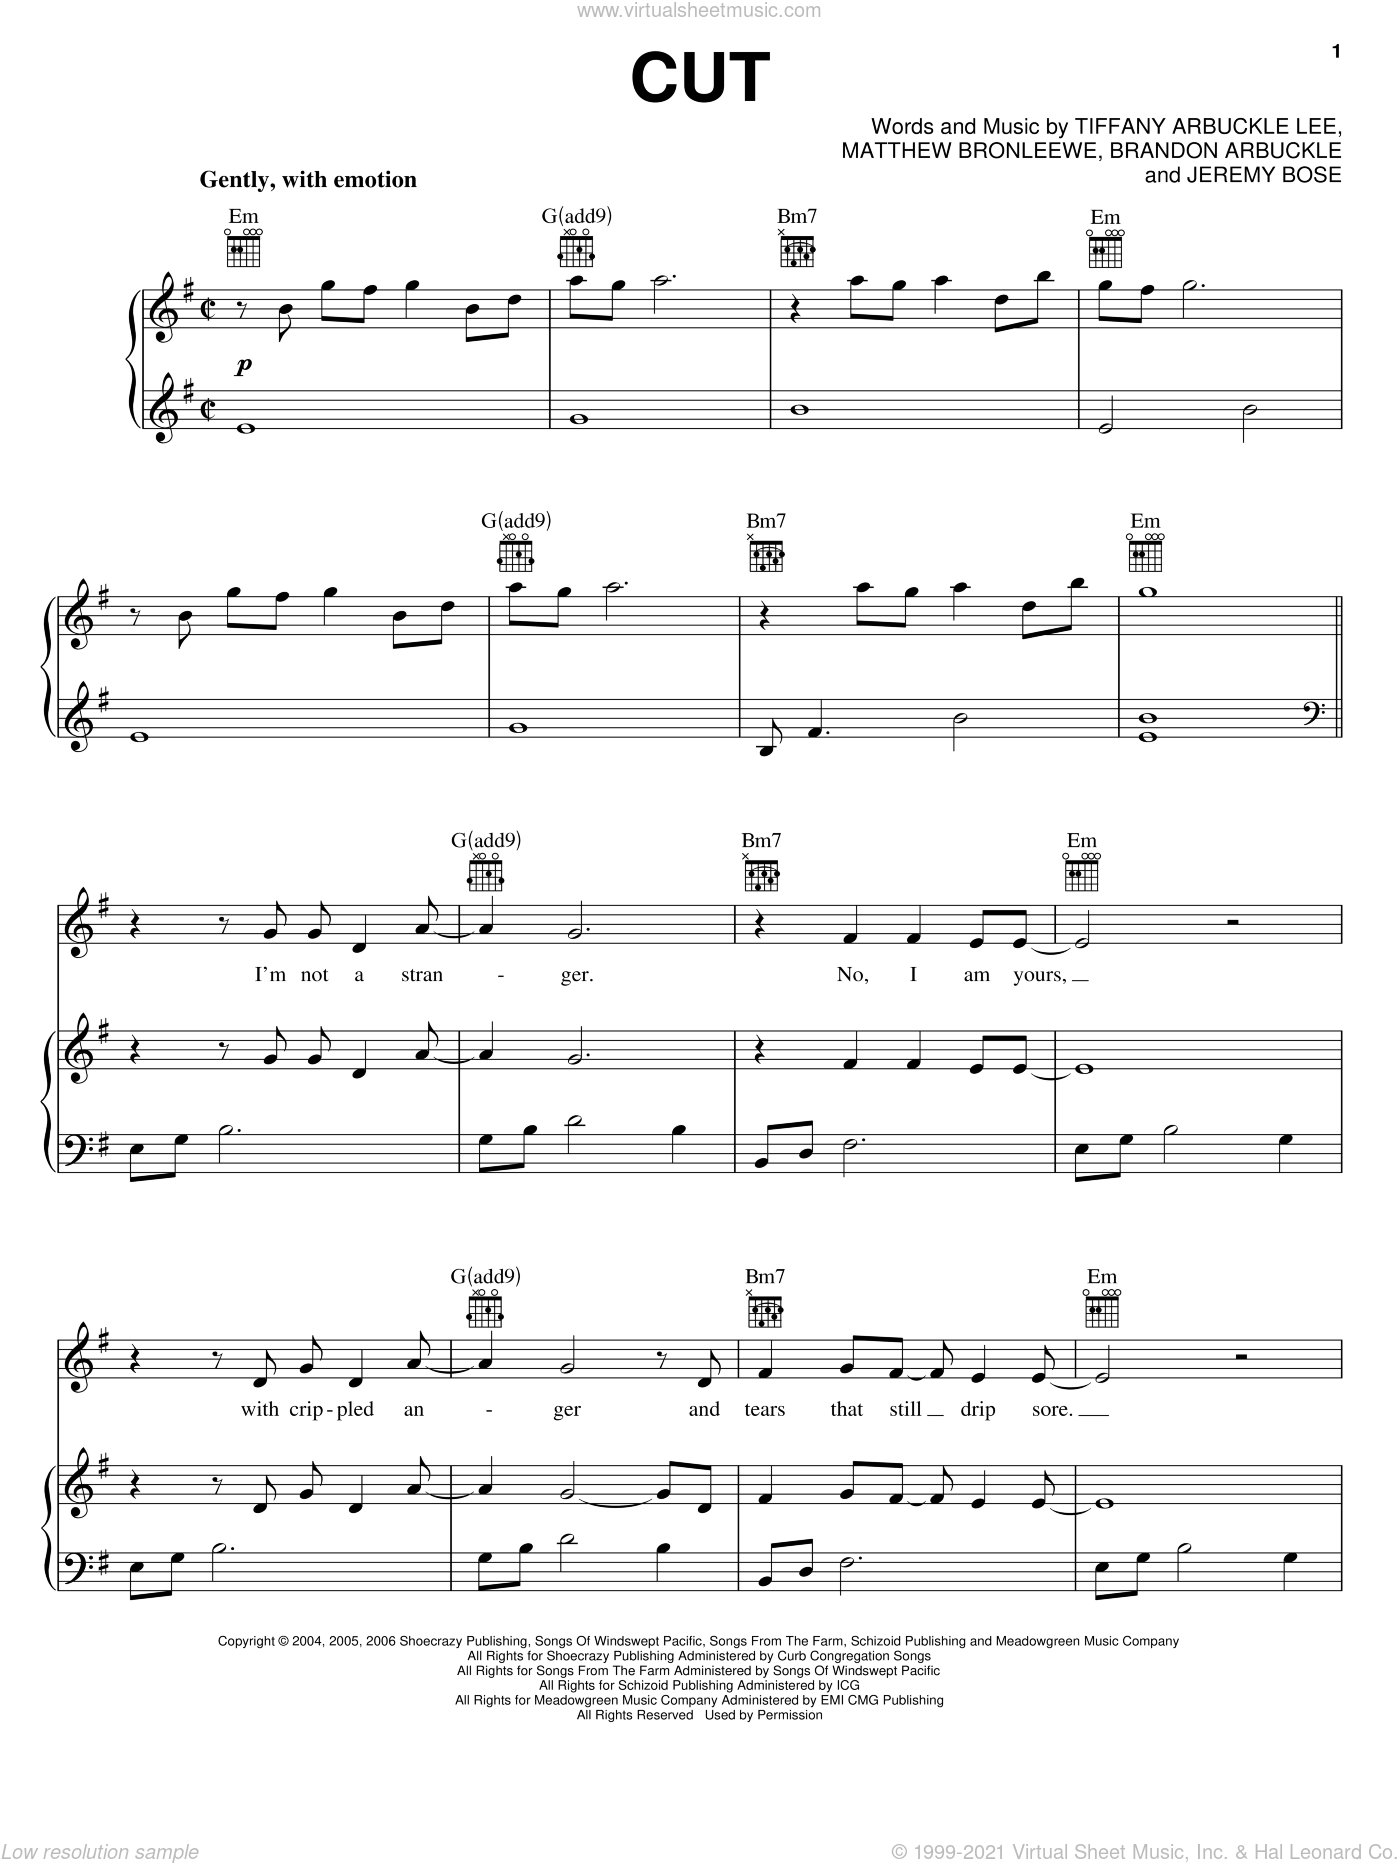 Cut sheet music for voice, piano or guitar by Tiffany Arbuckle, Jeremy Bose and Matt Bronleewe